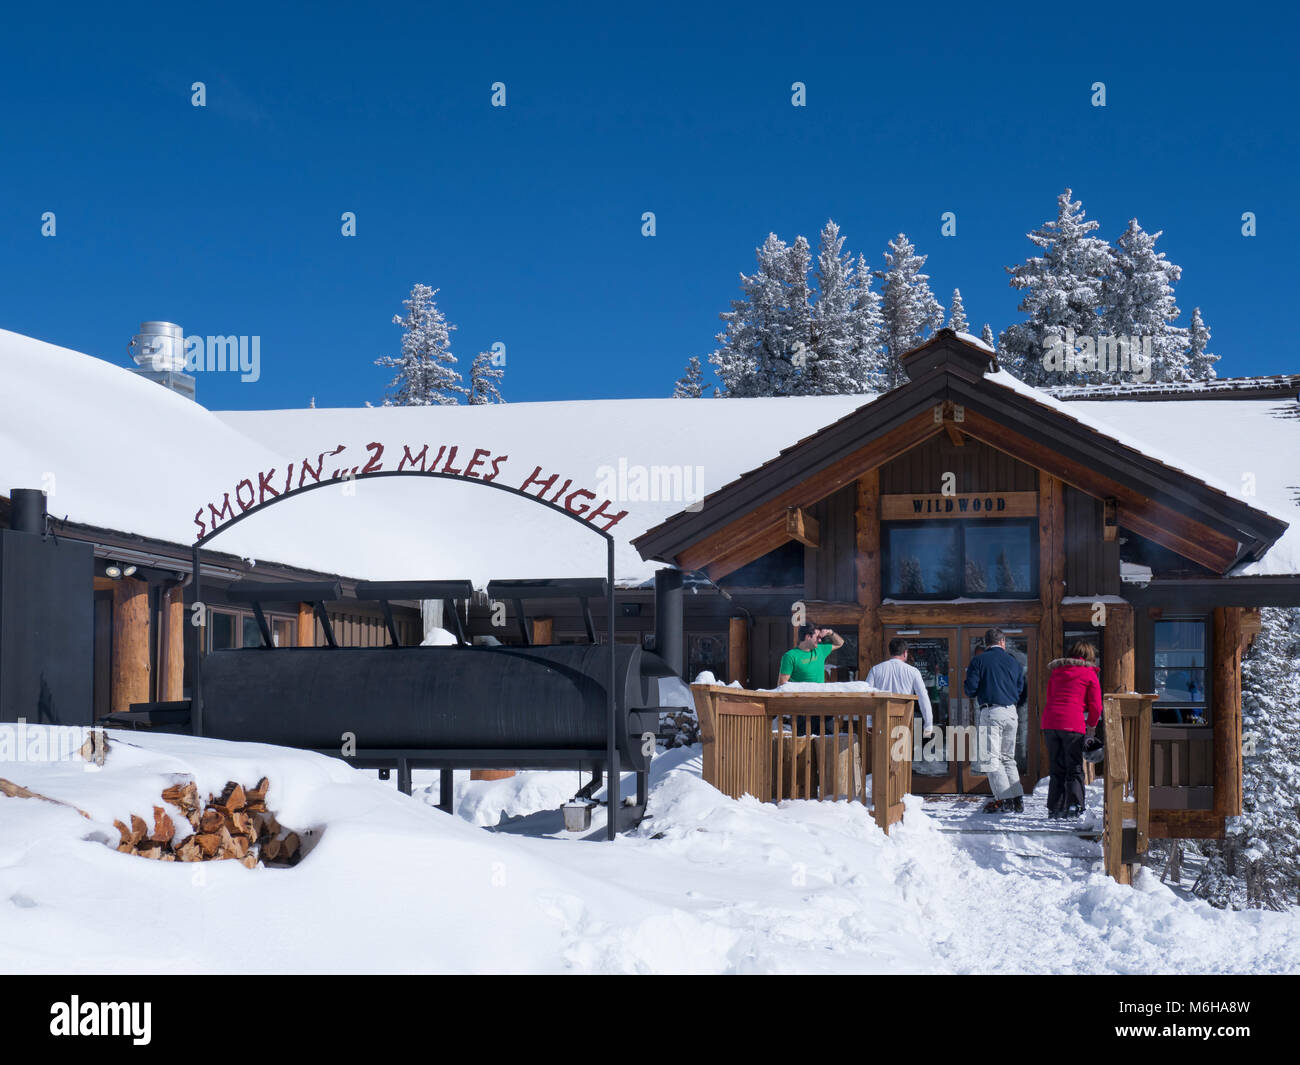 Wildwood day lodge and barbecue restaurant, winter, Vail Ski Resort, Vail, Colorado. Stock Photo